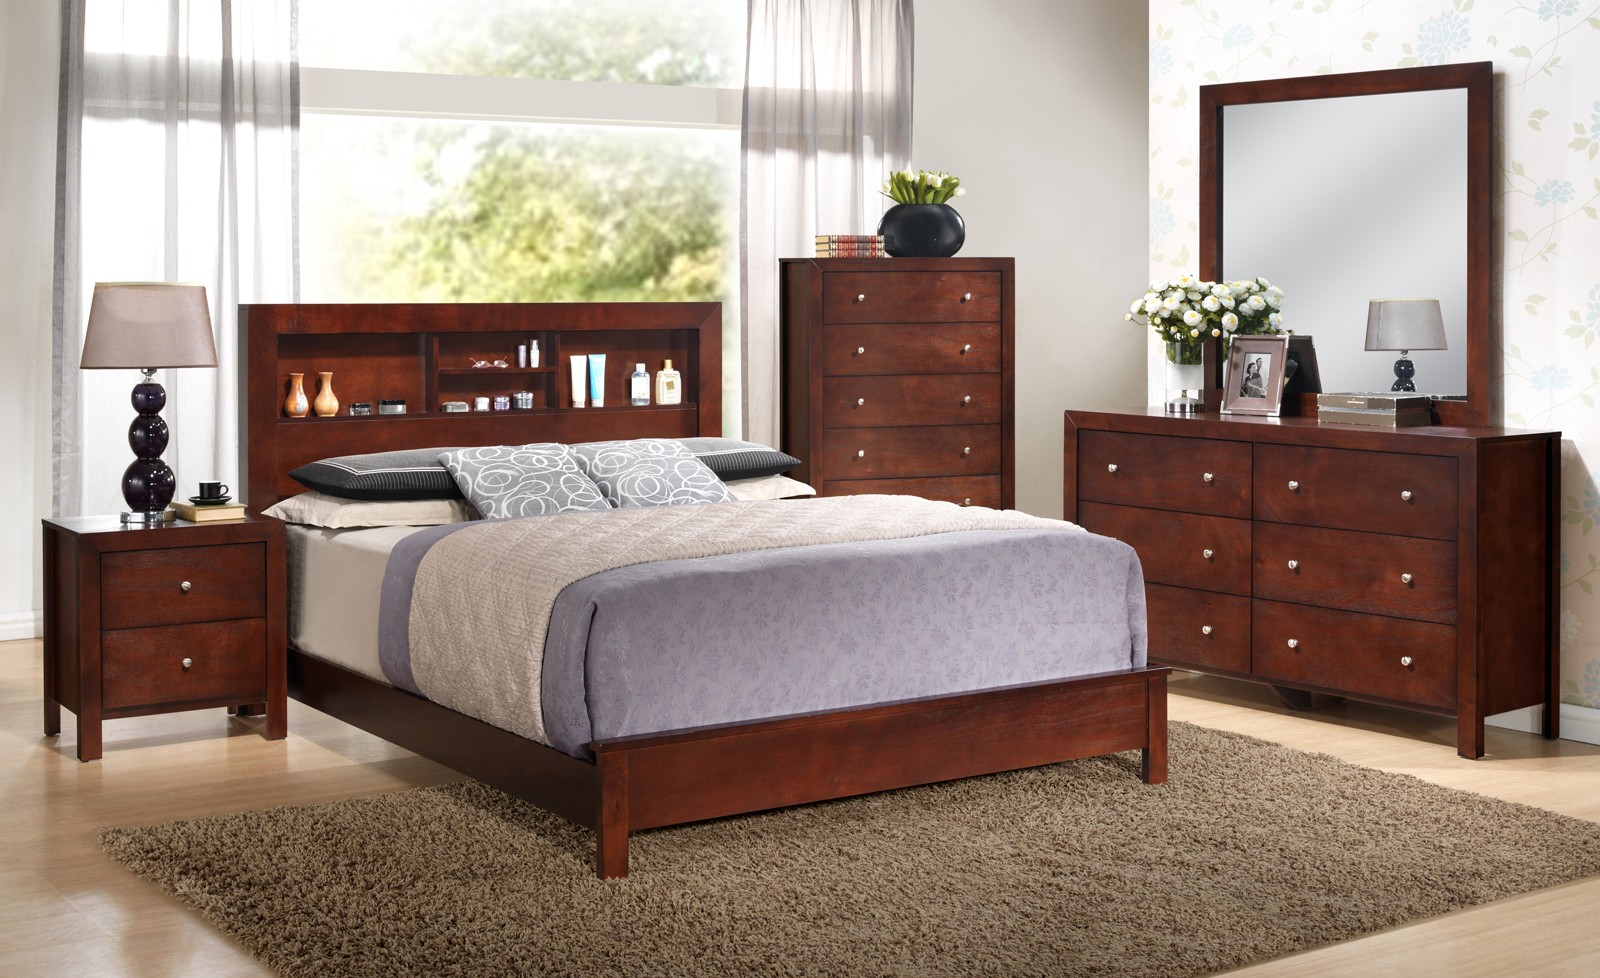 Glory Furniture G2400 Queen Bookcase Headboard Bed In Cherry G2400b Qb2